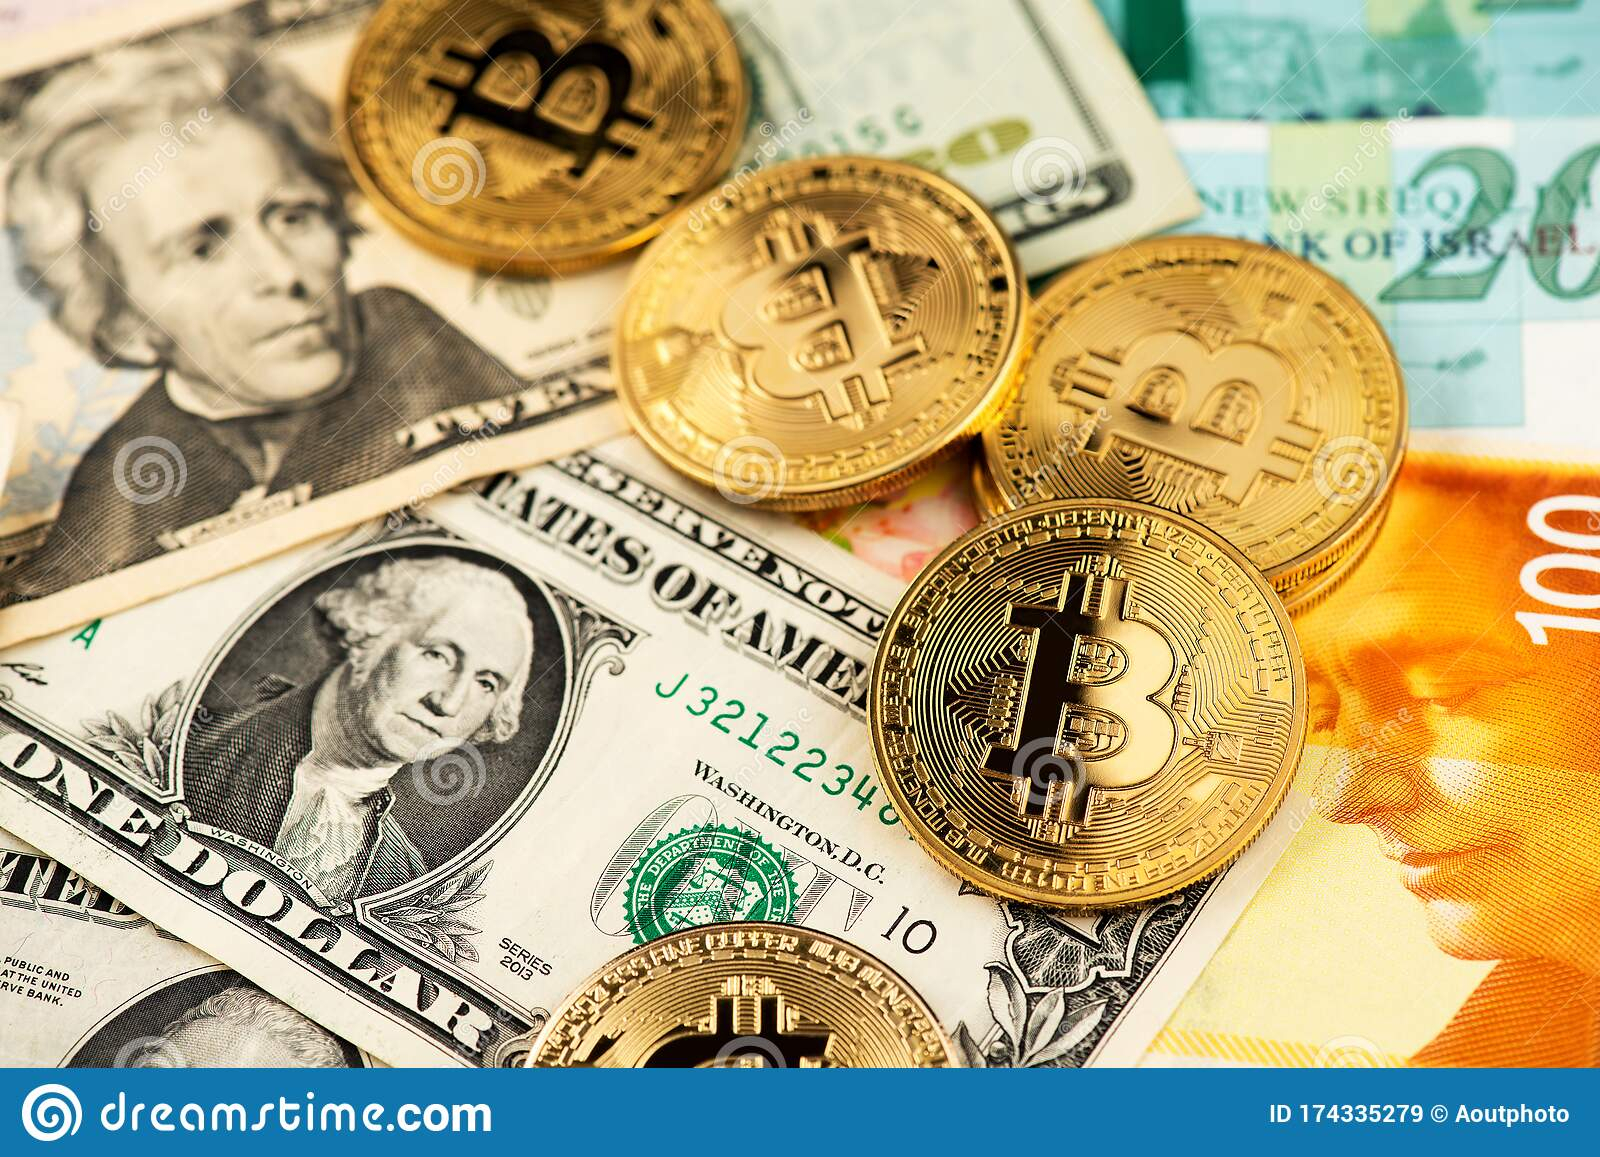 us coin cryptocurrency btc bharti